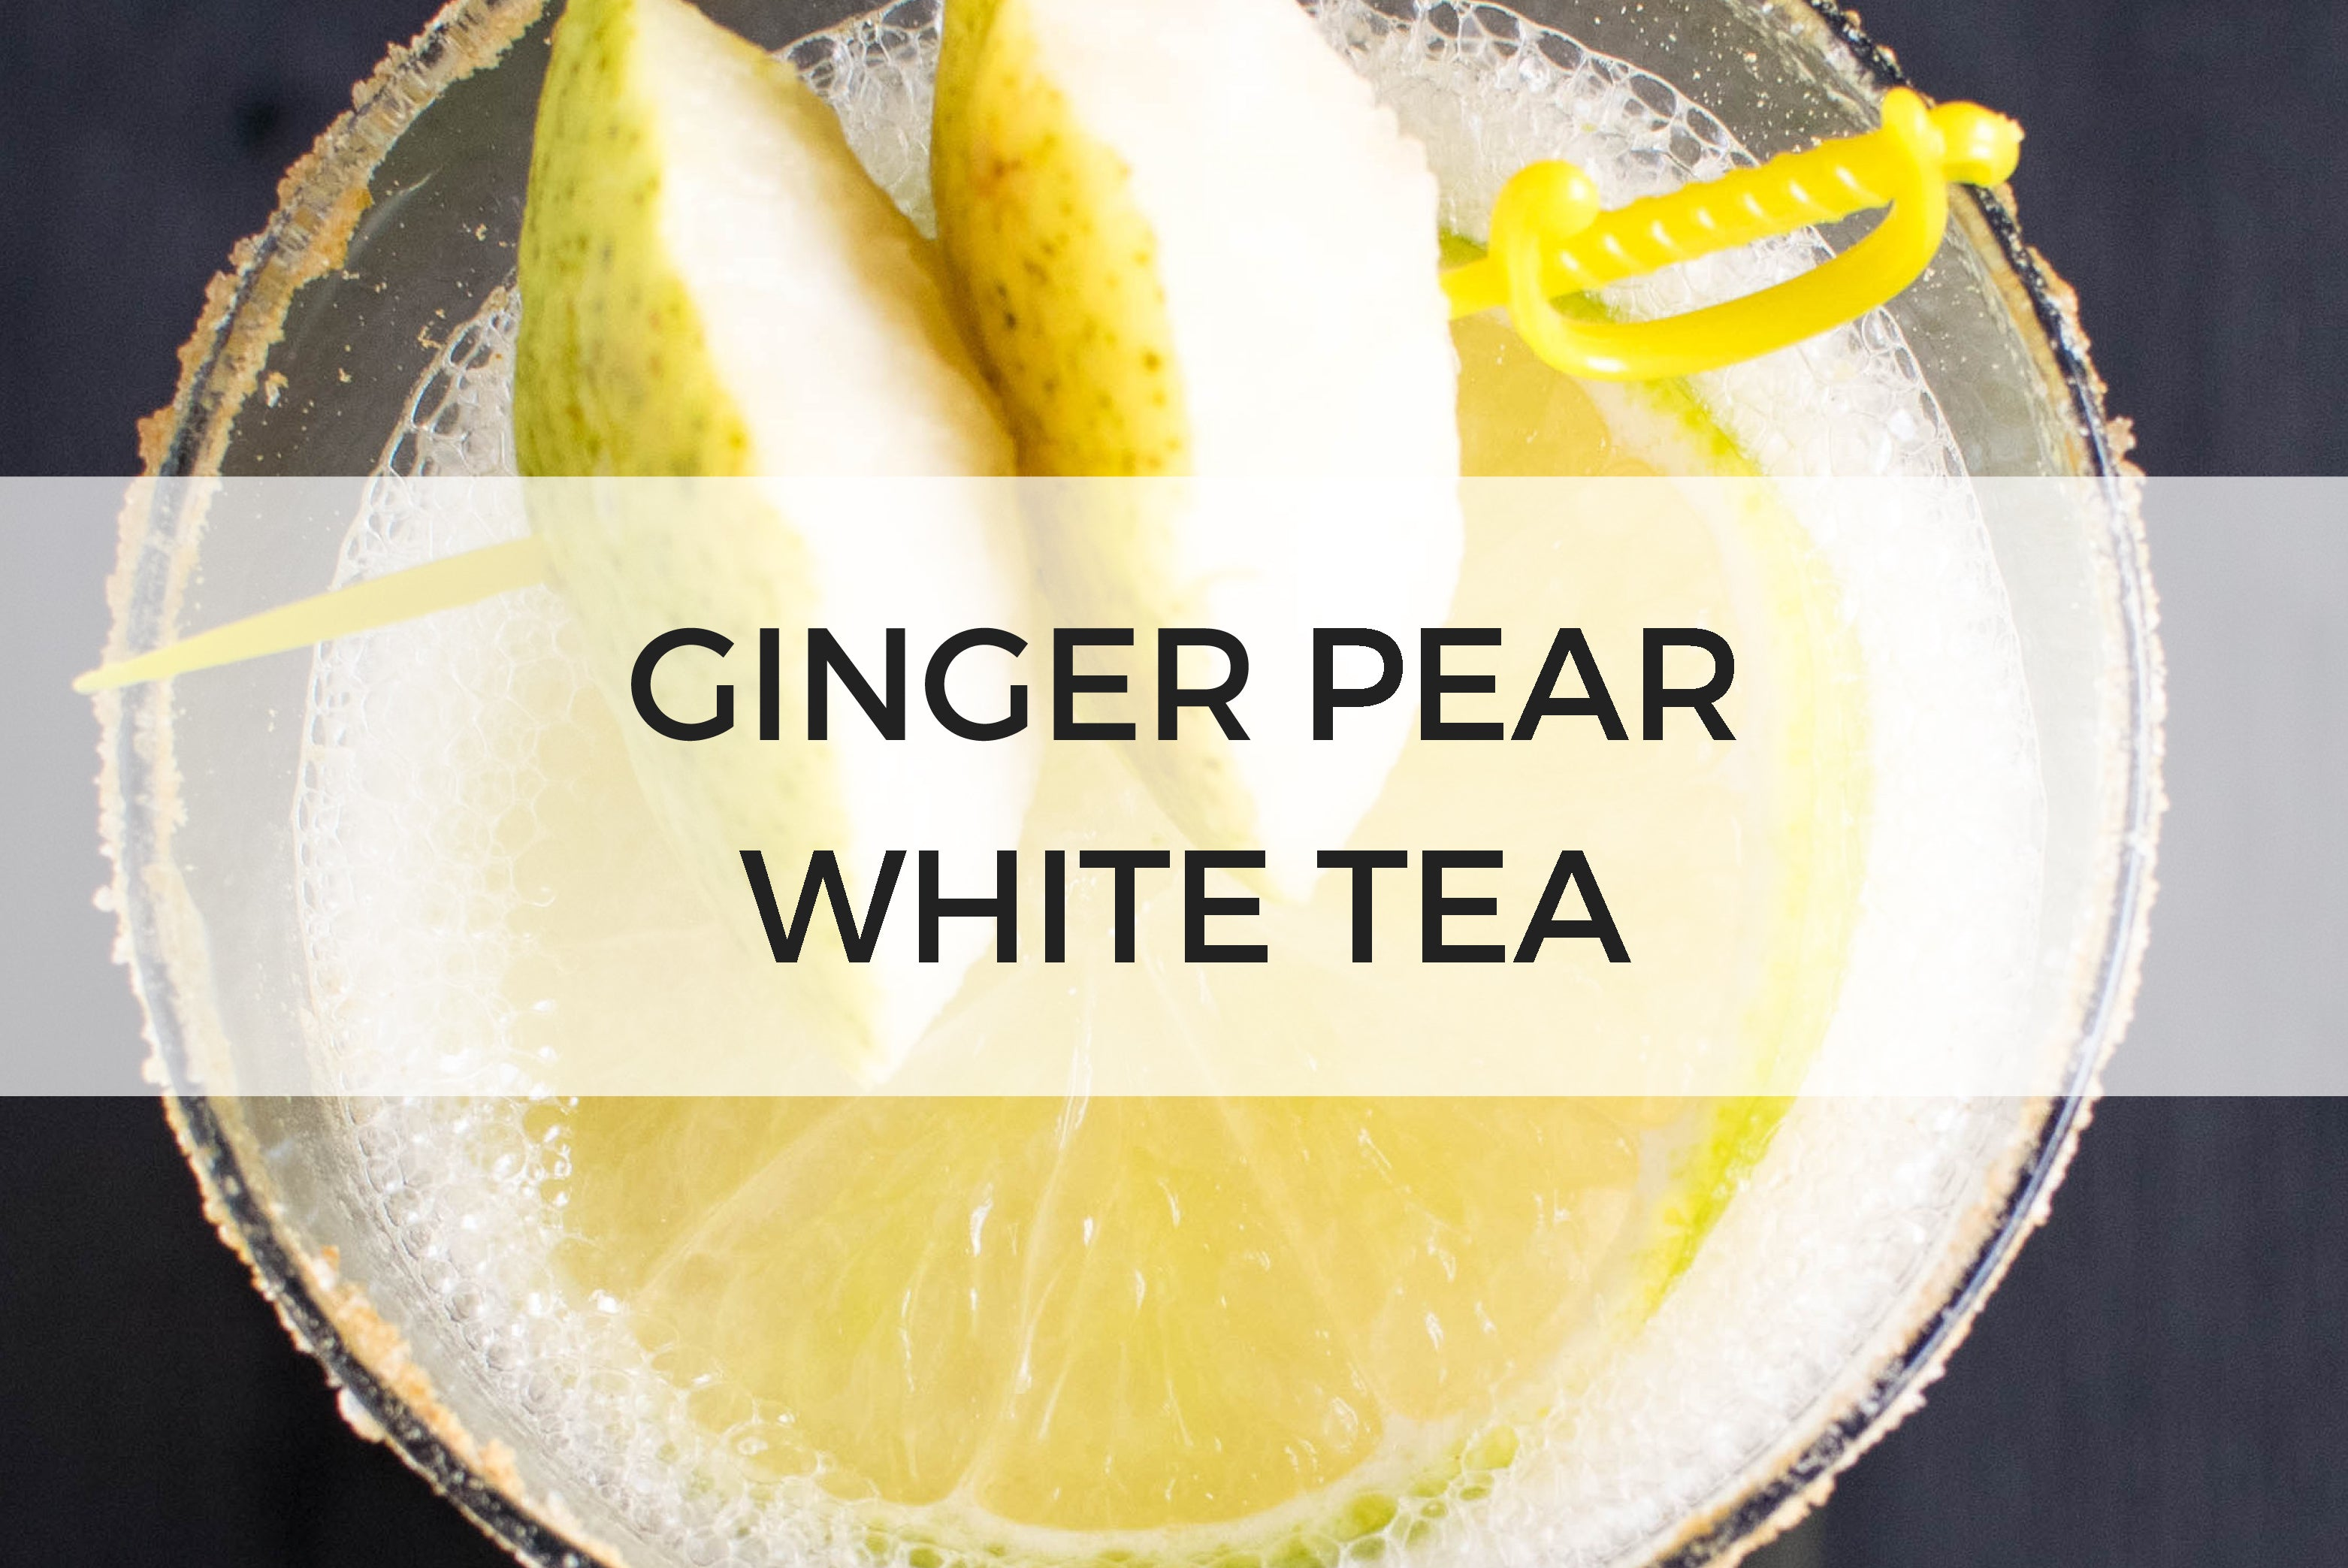 Ginger Pear White Tea